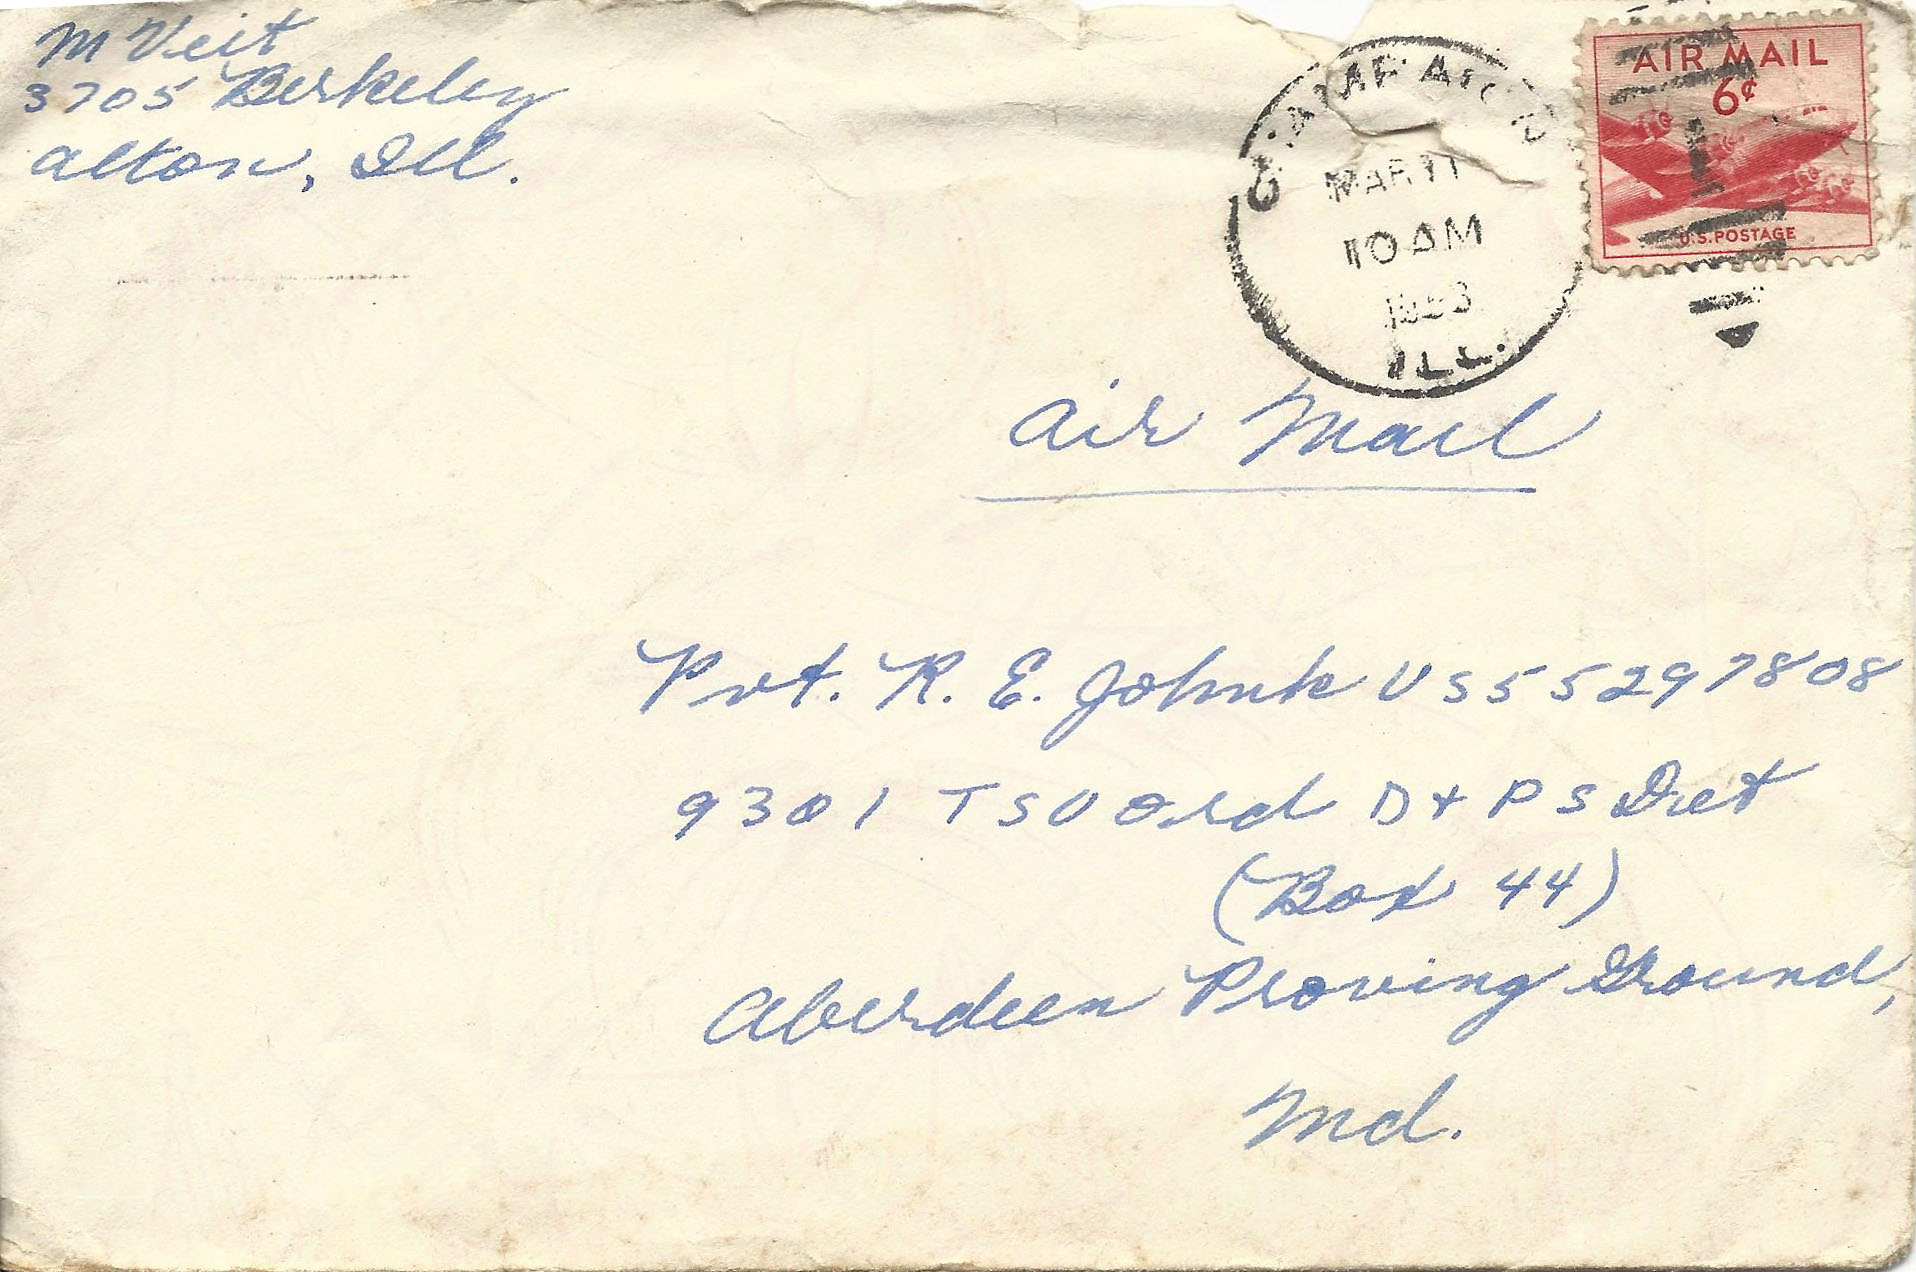 Mar. 10, 1953 (Marj) Envelope